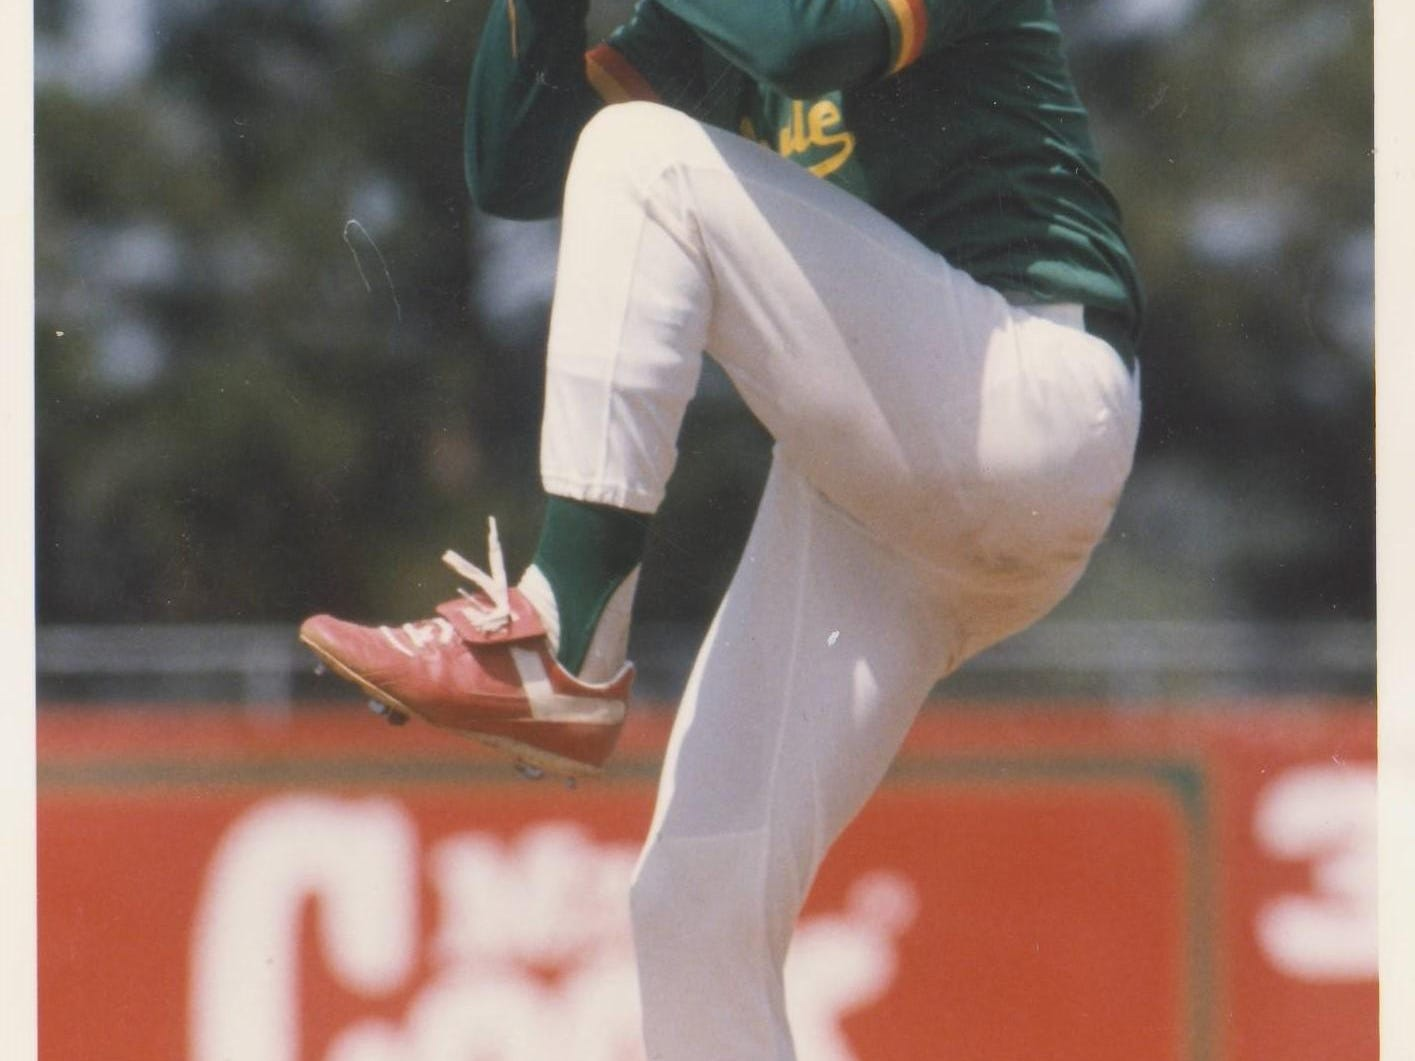 Pitcher Benji Grigsby of the Lafayette High-based Mr. Cook Burners played in the era of the local American Legion baseball heyday. Grigsby was a first-round draft pick of the Oakland A's in 1992. These days, prospects of that level play on out-of-town travel teams.